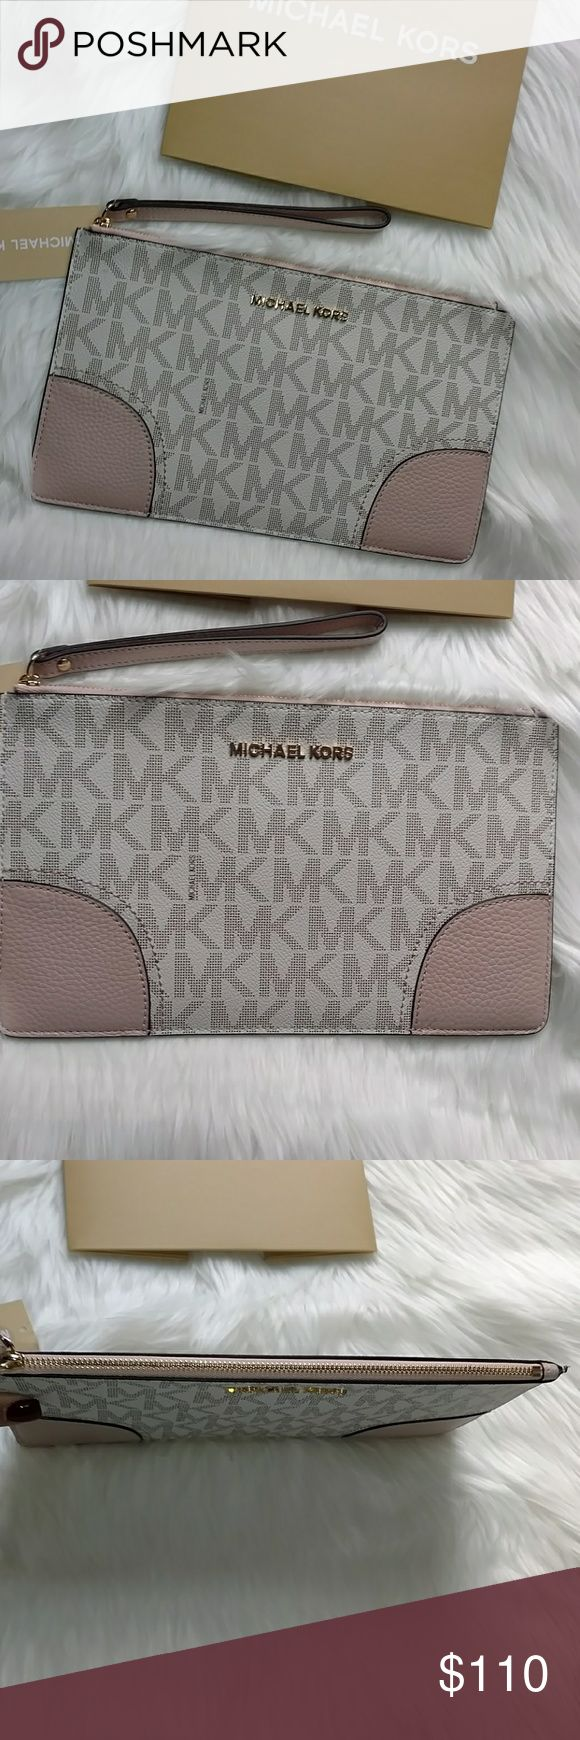 (MICHAEL KORS) LG HATTIE ZIP CLUTCH THIS IS A NEW W TAGS AND MK CARD, VANNILA LG ZIP CLUTCH, ABSOLUTELY STUNNING! HAS TAN CORNERS. ABSOLUTELY NO WEAR...LG, MEASURES 10.5' WIDE X 6' DEEP SO LOTS OF ROOM FOR PHONE AND SOME. HAS GOLD HARDWARE . CAN MAKE AN AMAZING CHRISTMAS GIFT FOR SOMEONE SPECIAL❣️ Michael Kors Bags Clutches & Wristlets